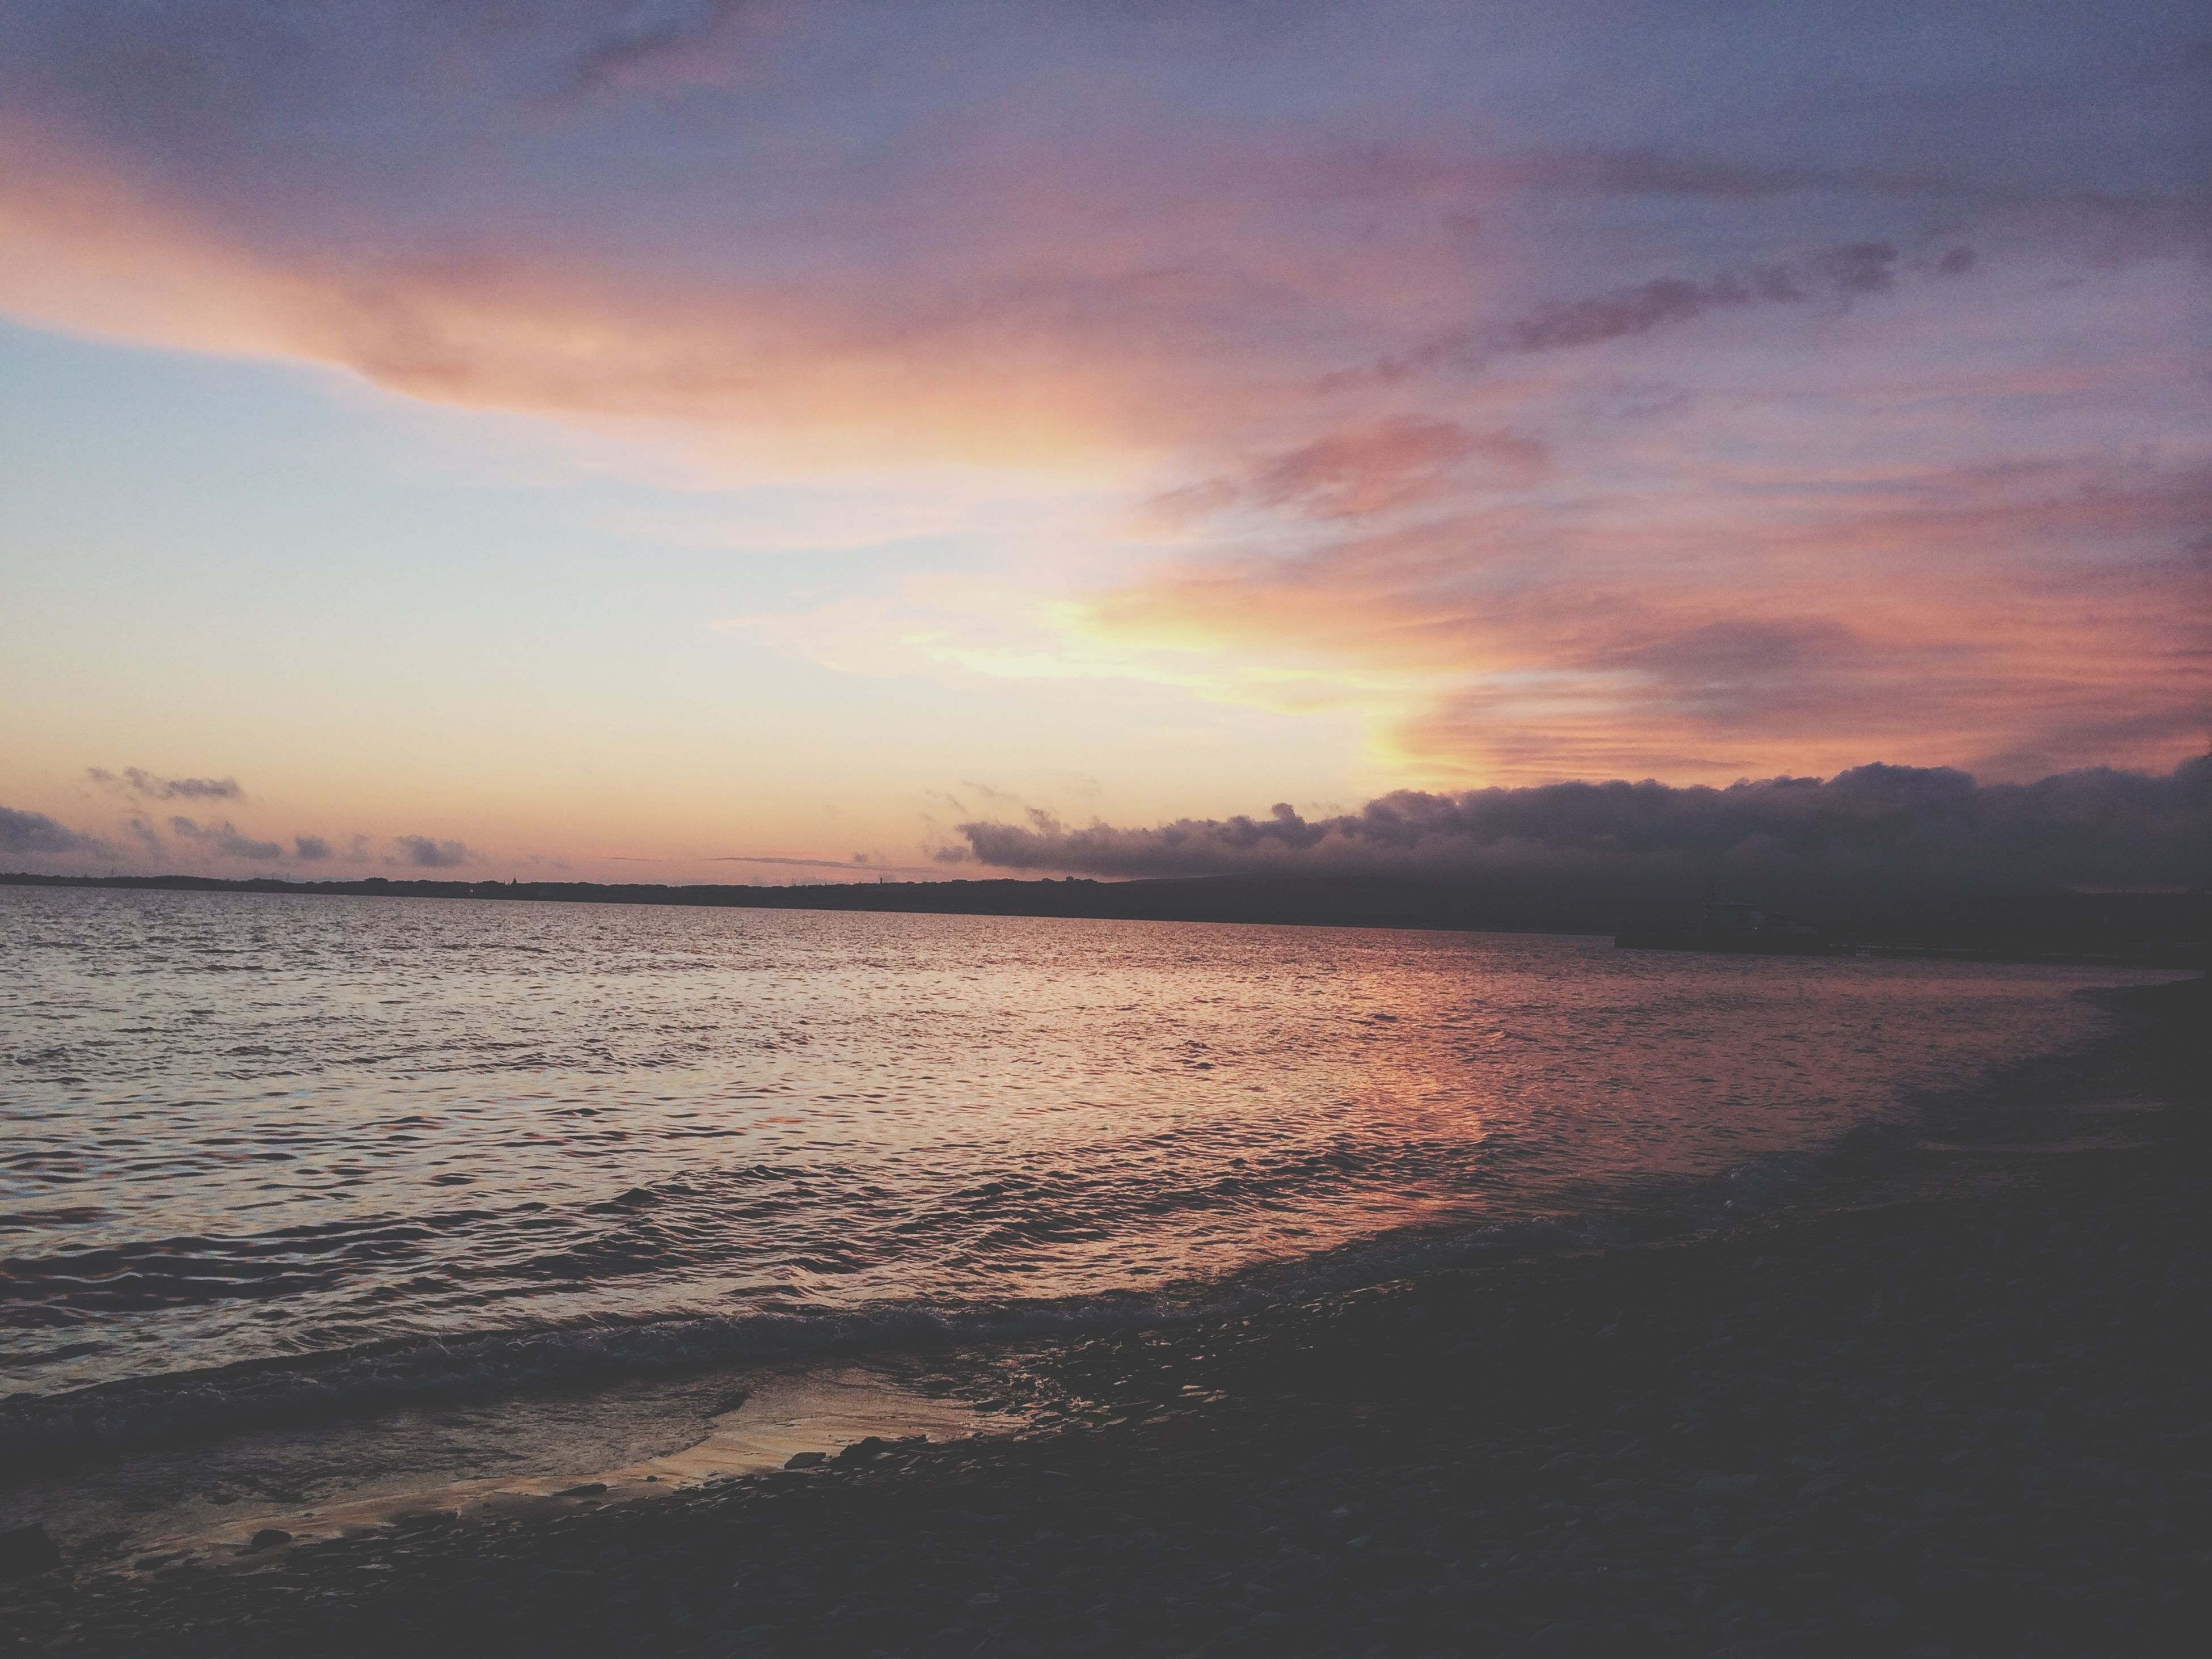 sunset, water, tranquil scene, scenics, tranquility, sky, beauty in nature, sea, cloud - sky, idyllic, orange color, nature, reflection, beach, lake, shore, cloud, silhouette, outdoors, non-urban scene